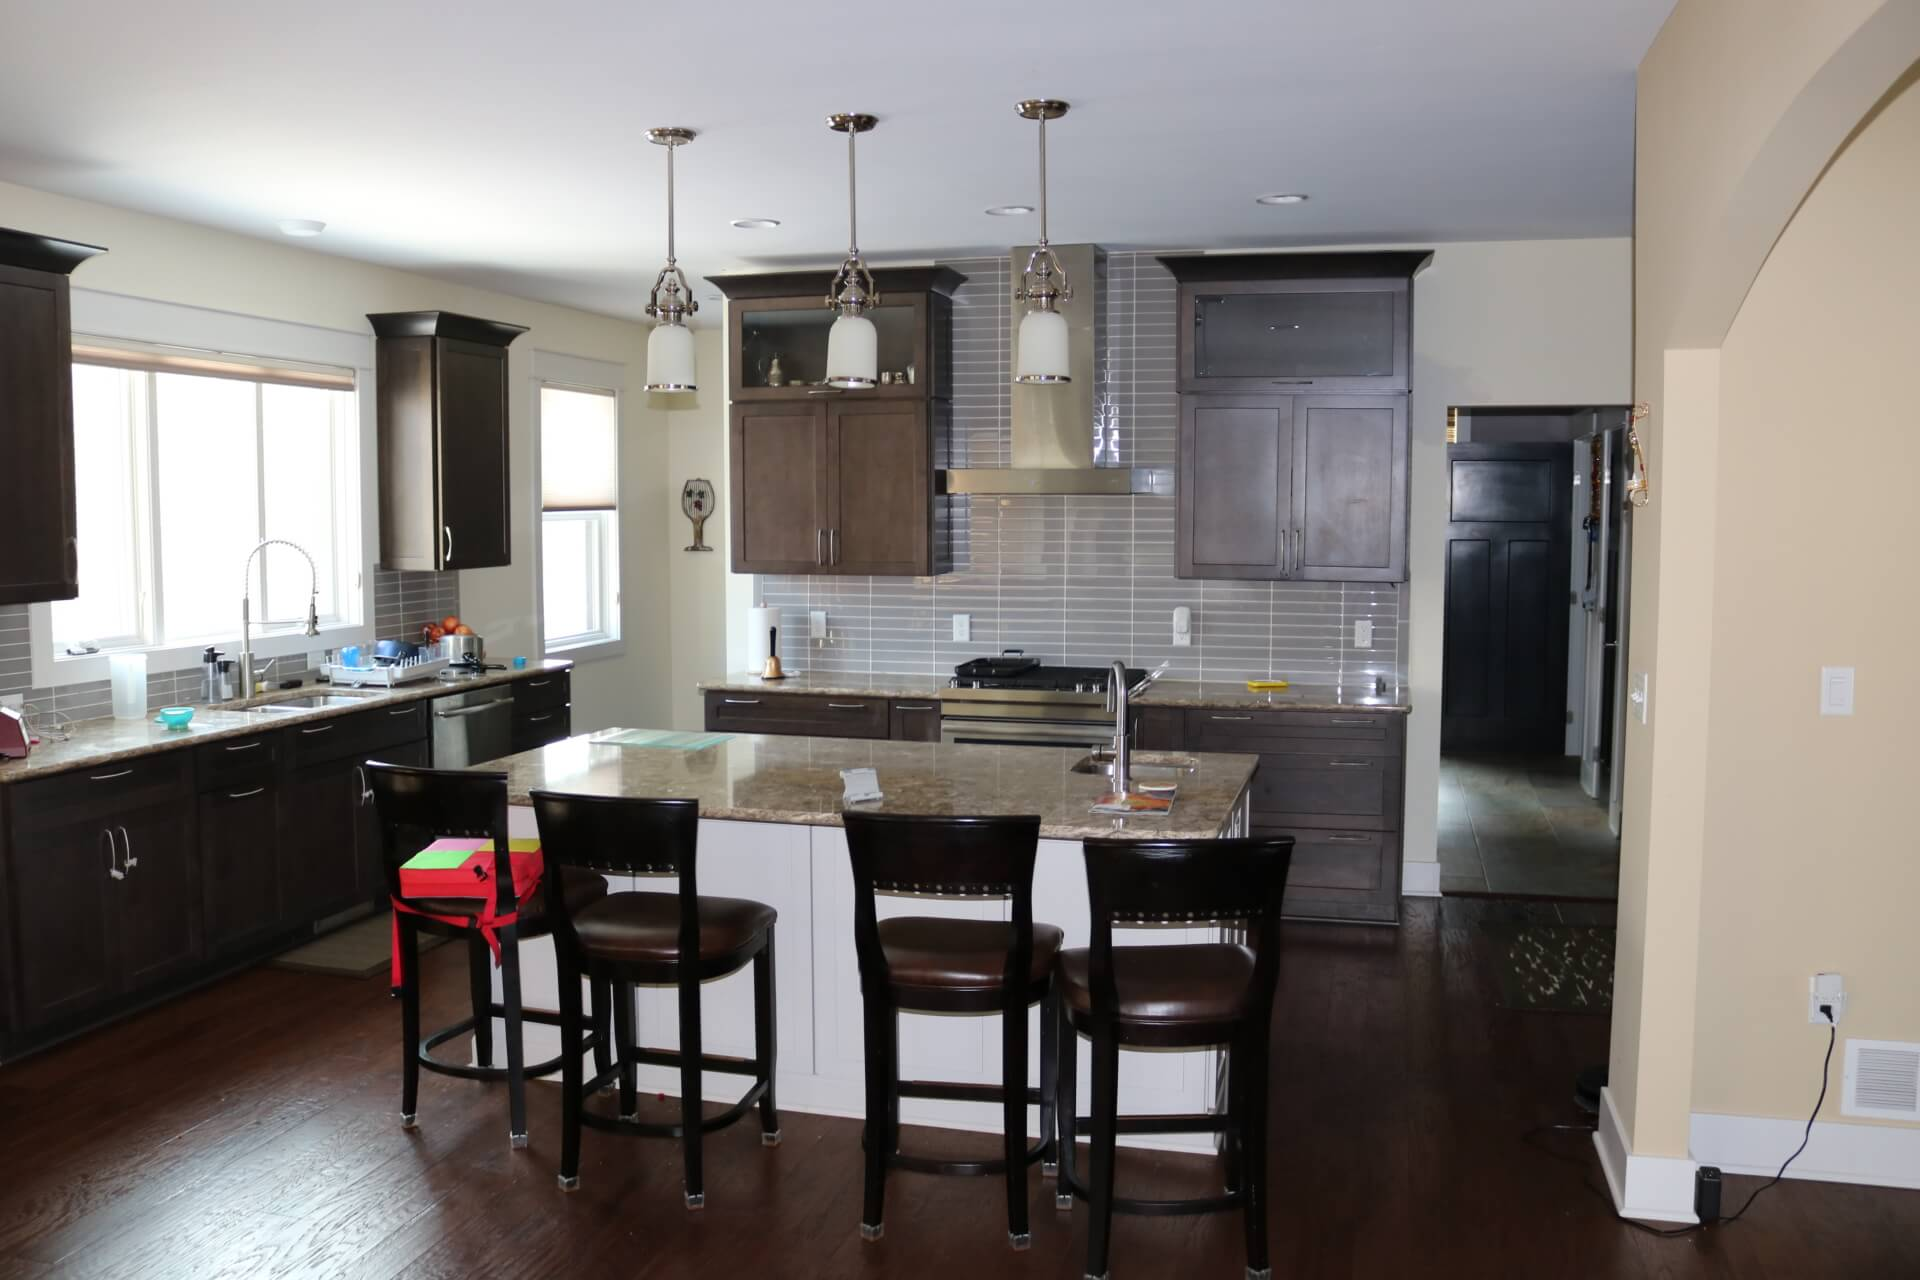 Kitchen Remodel Services | Kitchen Remodel Electricians Lowell MI